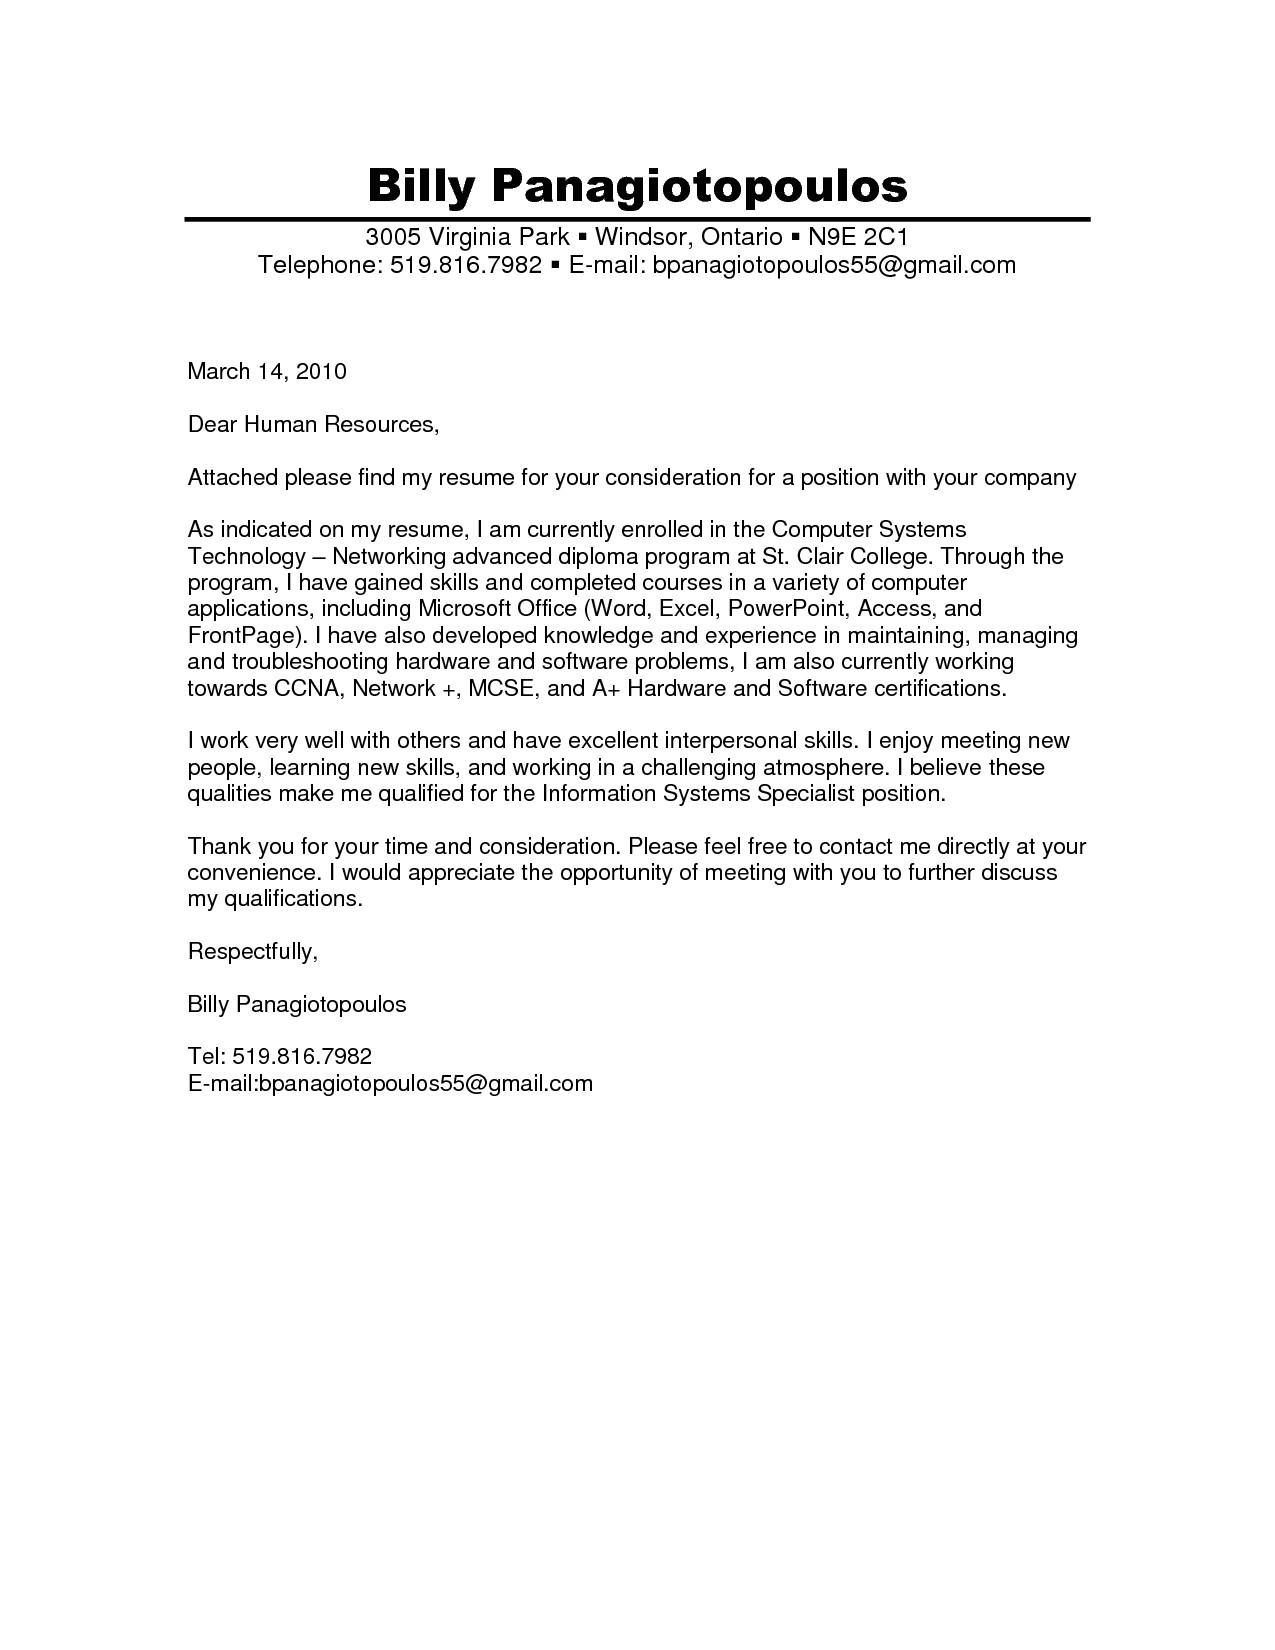 Dear Management Cover Letter Cover Letter Dear Project Scope Template